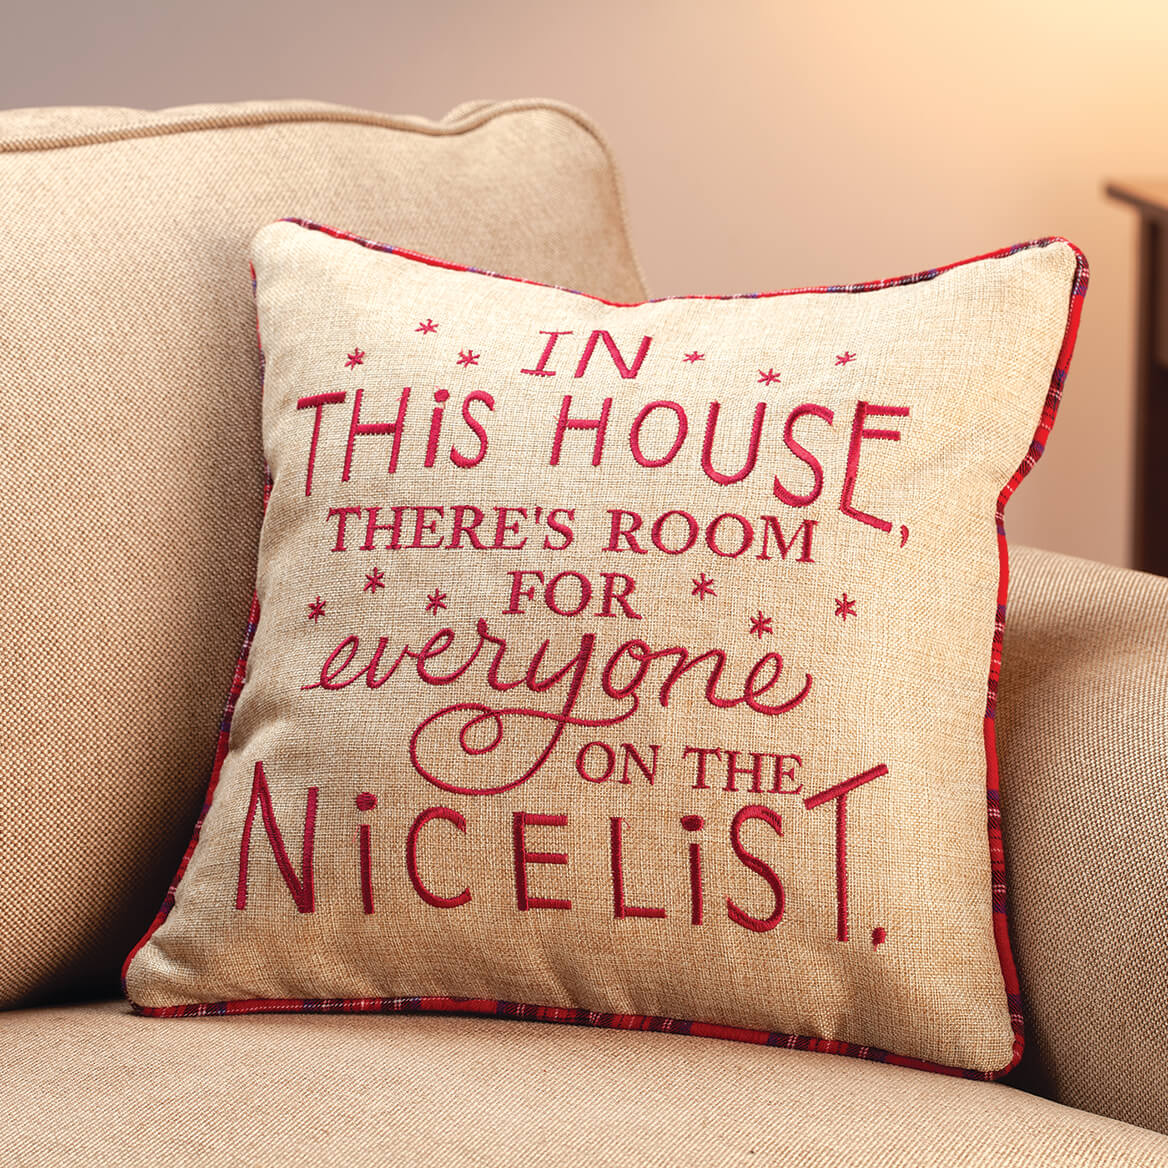 Holiday Nice List Decorative Cover-370866